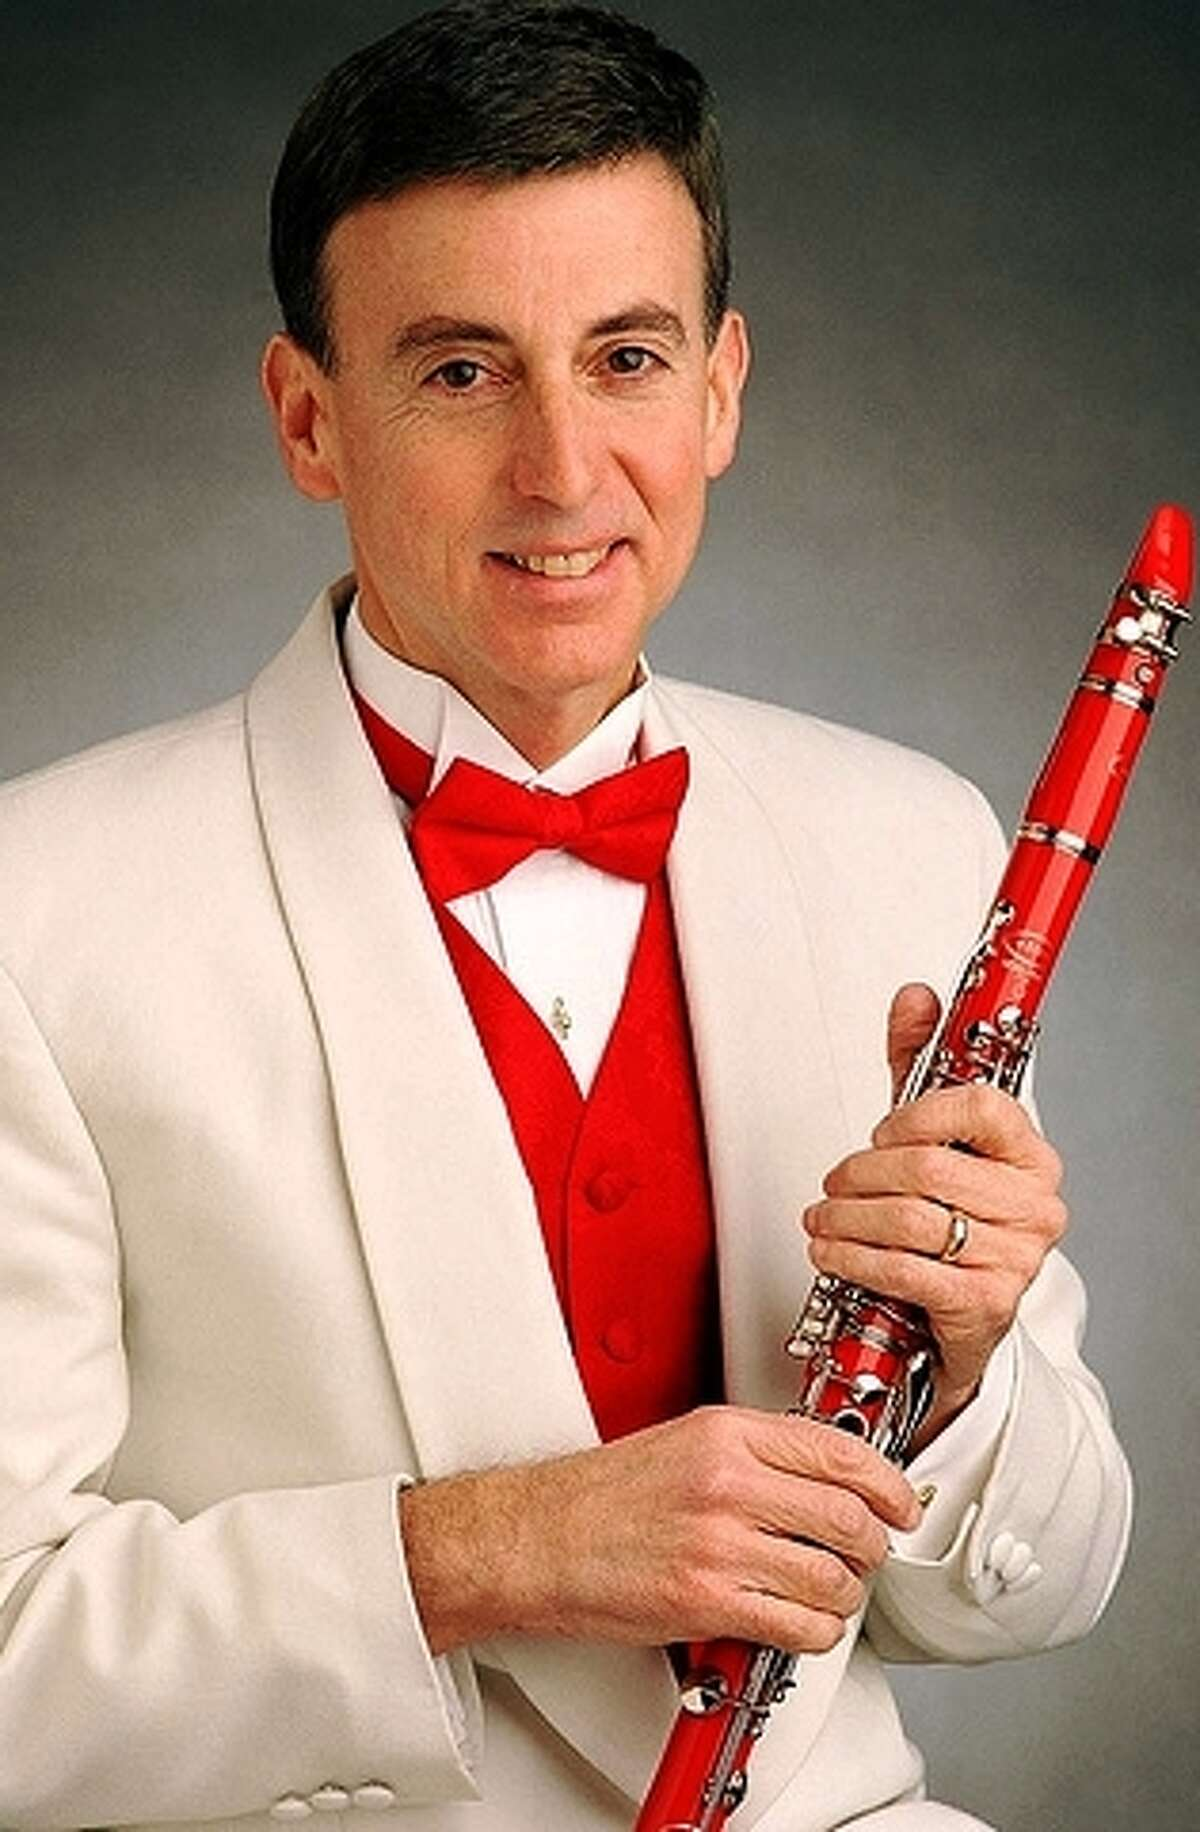 Cleveland Pops Orchestra Conductor Carl Topilow, who's conducting